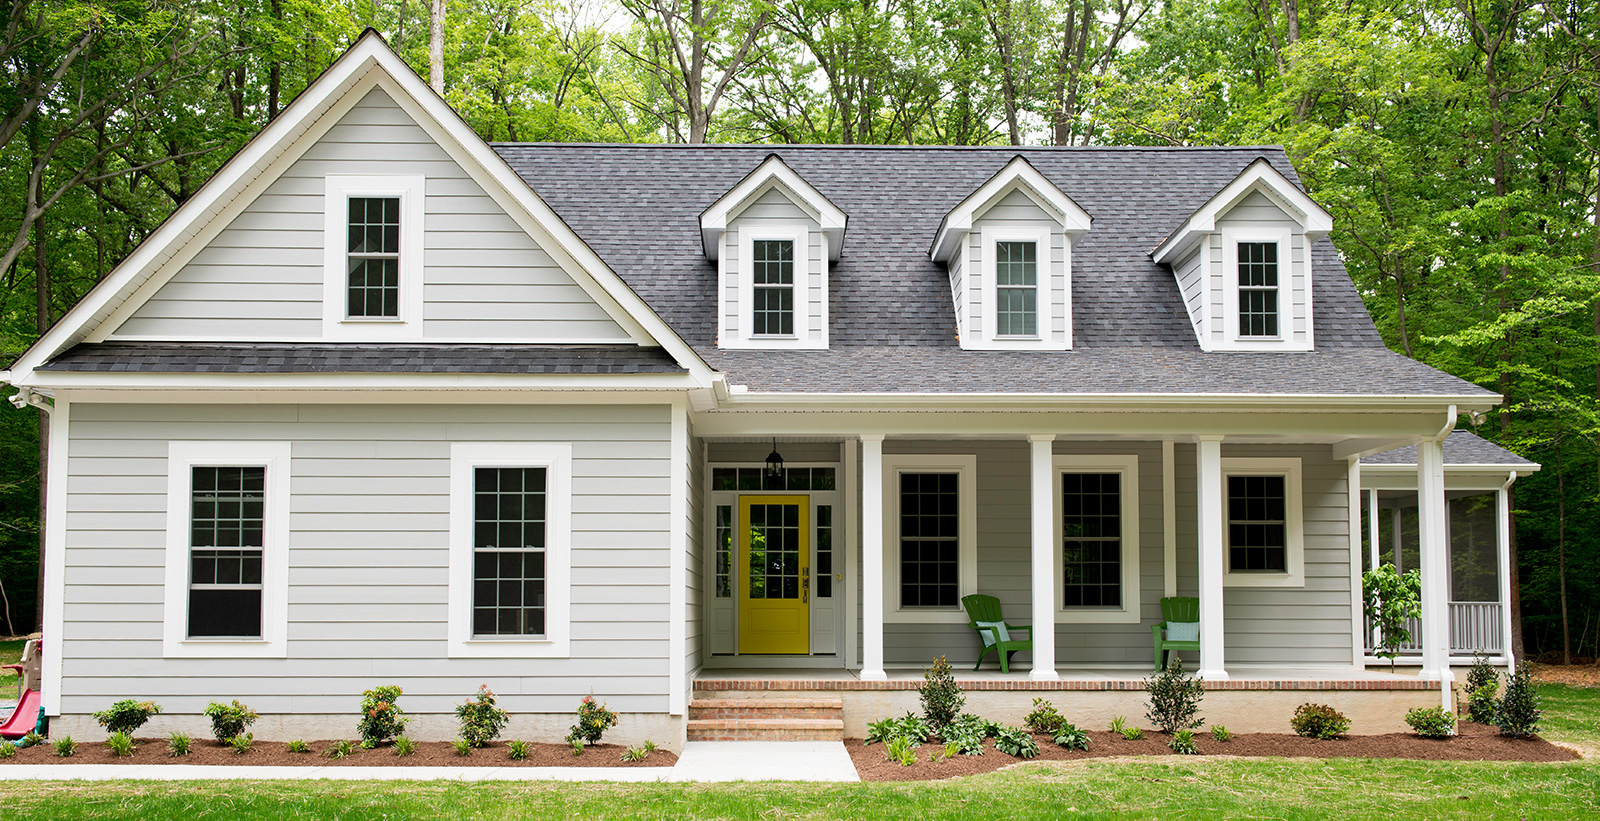 farmhouse exterior colors ideas and inspiration paint on country farmhouse exterior paint colors 2021 id=69593